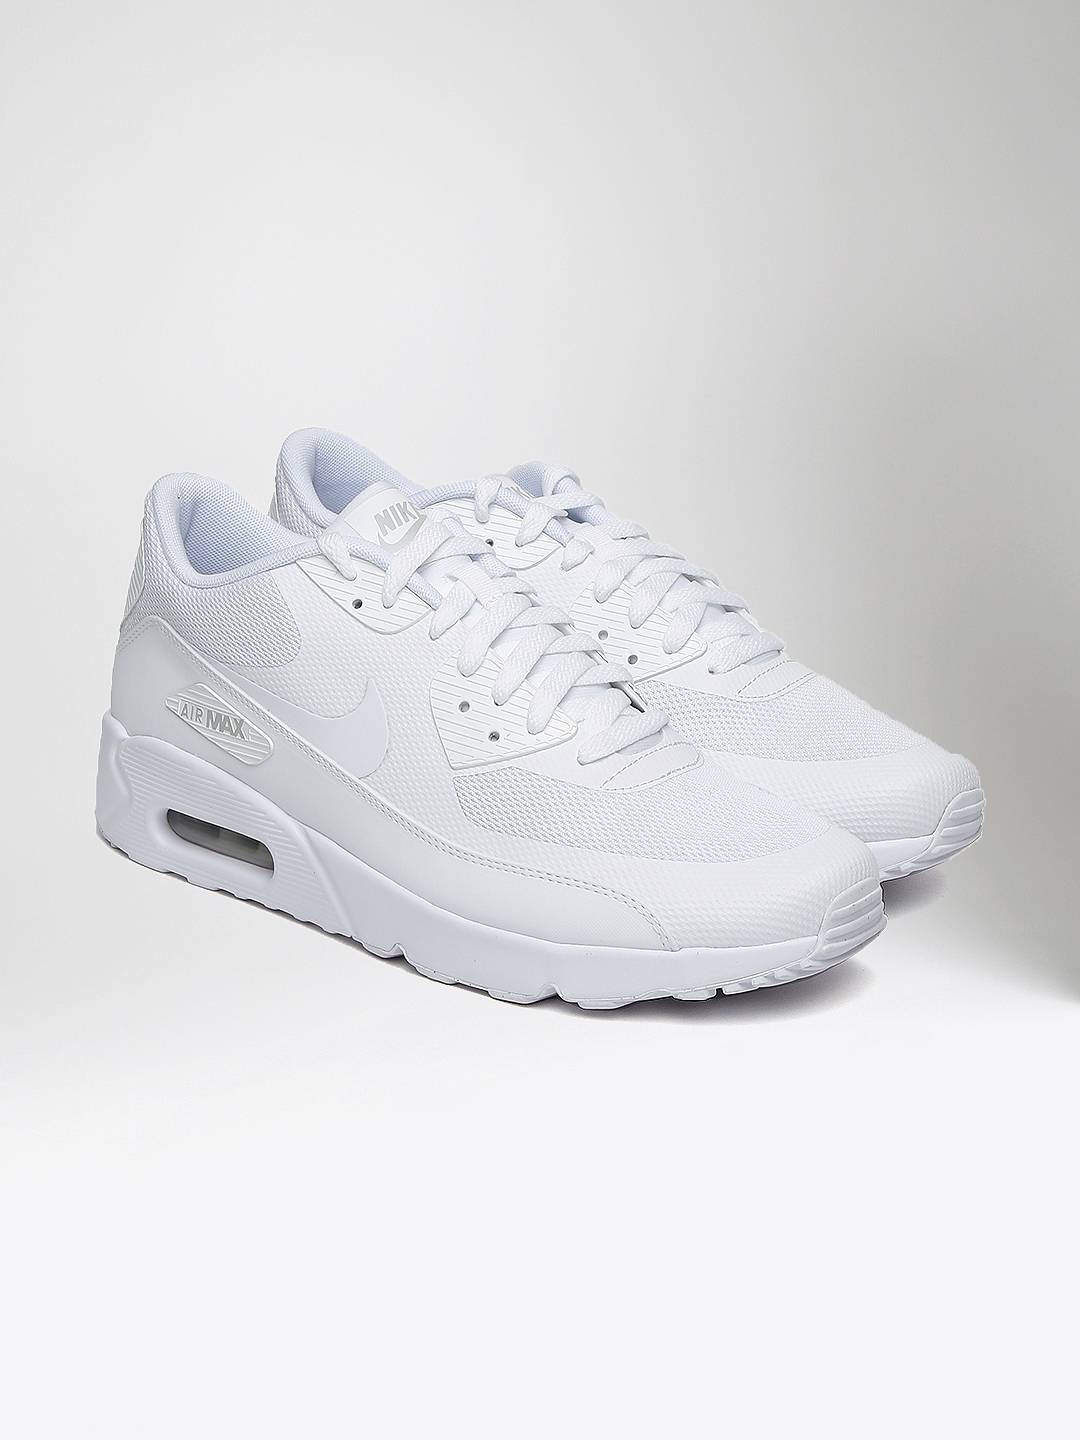 half off 67cf0 959fe Nike Men White Air Max 90 Ultra 2.0 Essential Sneakers